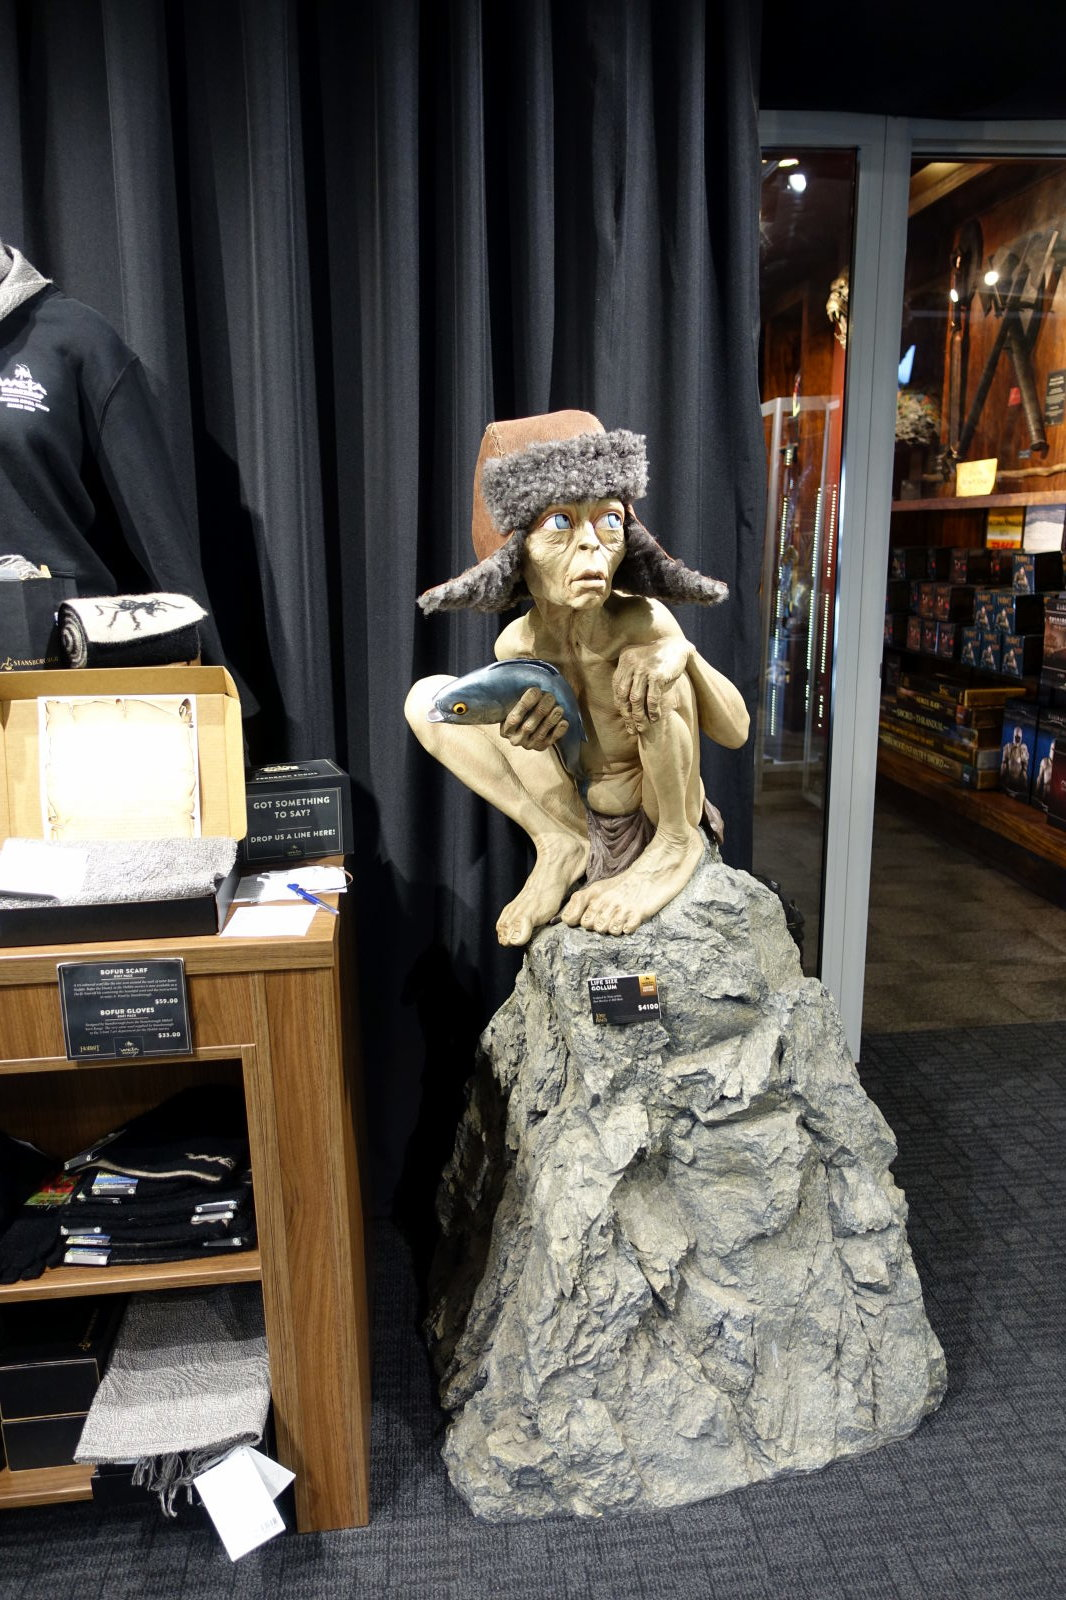 Figure of Gollum on the rock. Gollum wears ushanka.